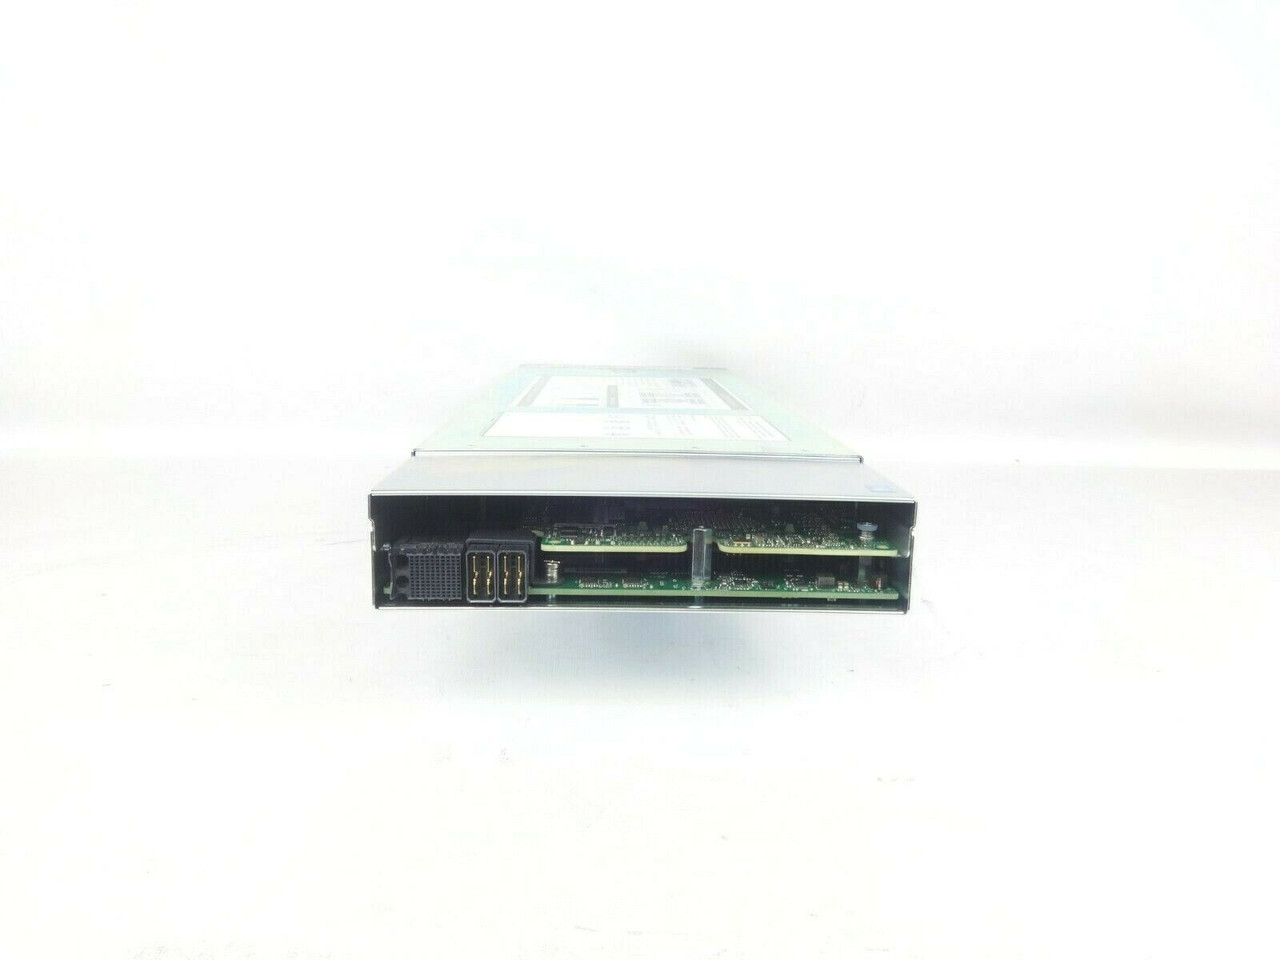 Cisco UCS-B200-M4 Blade Server Chassis